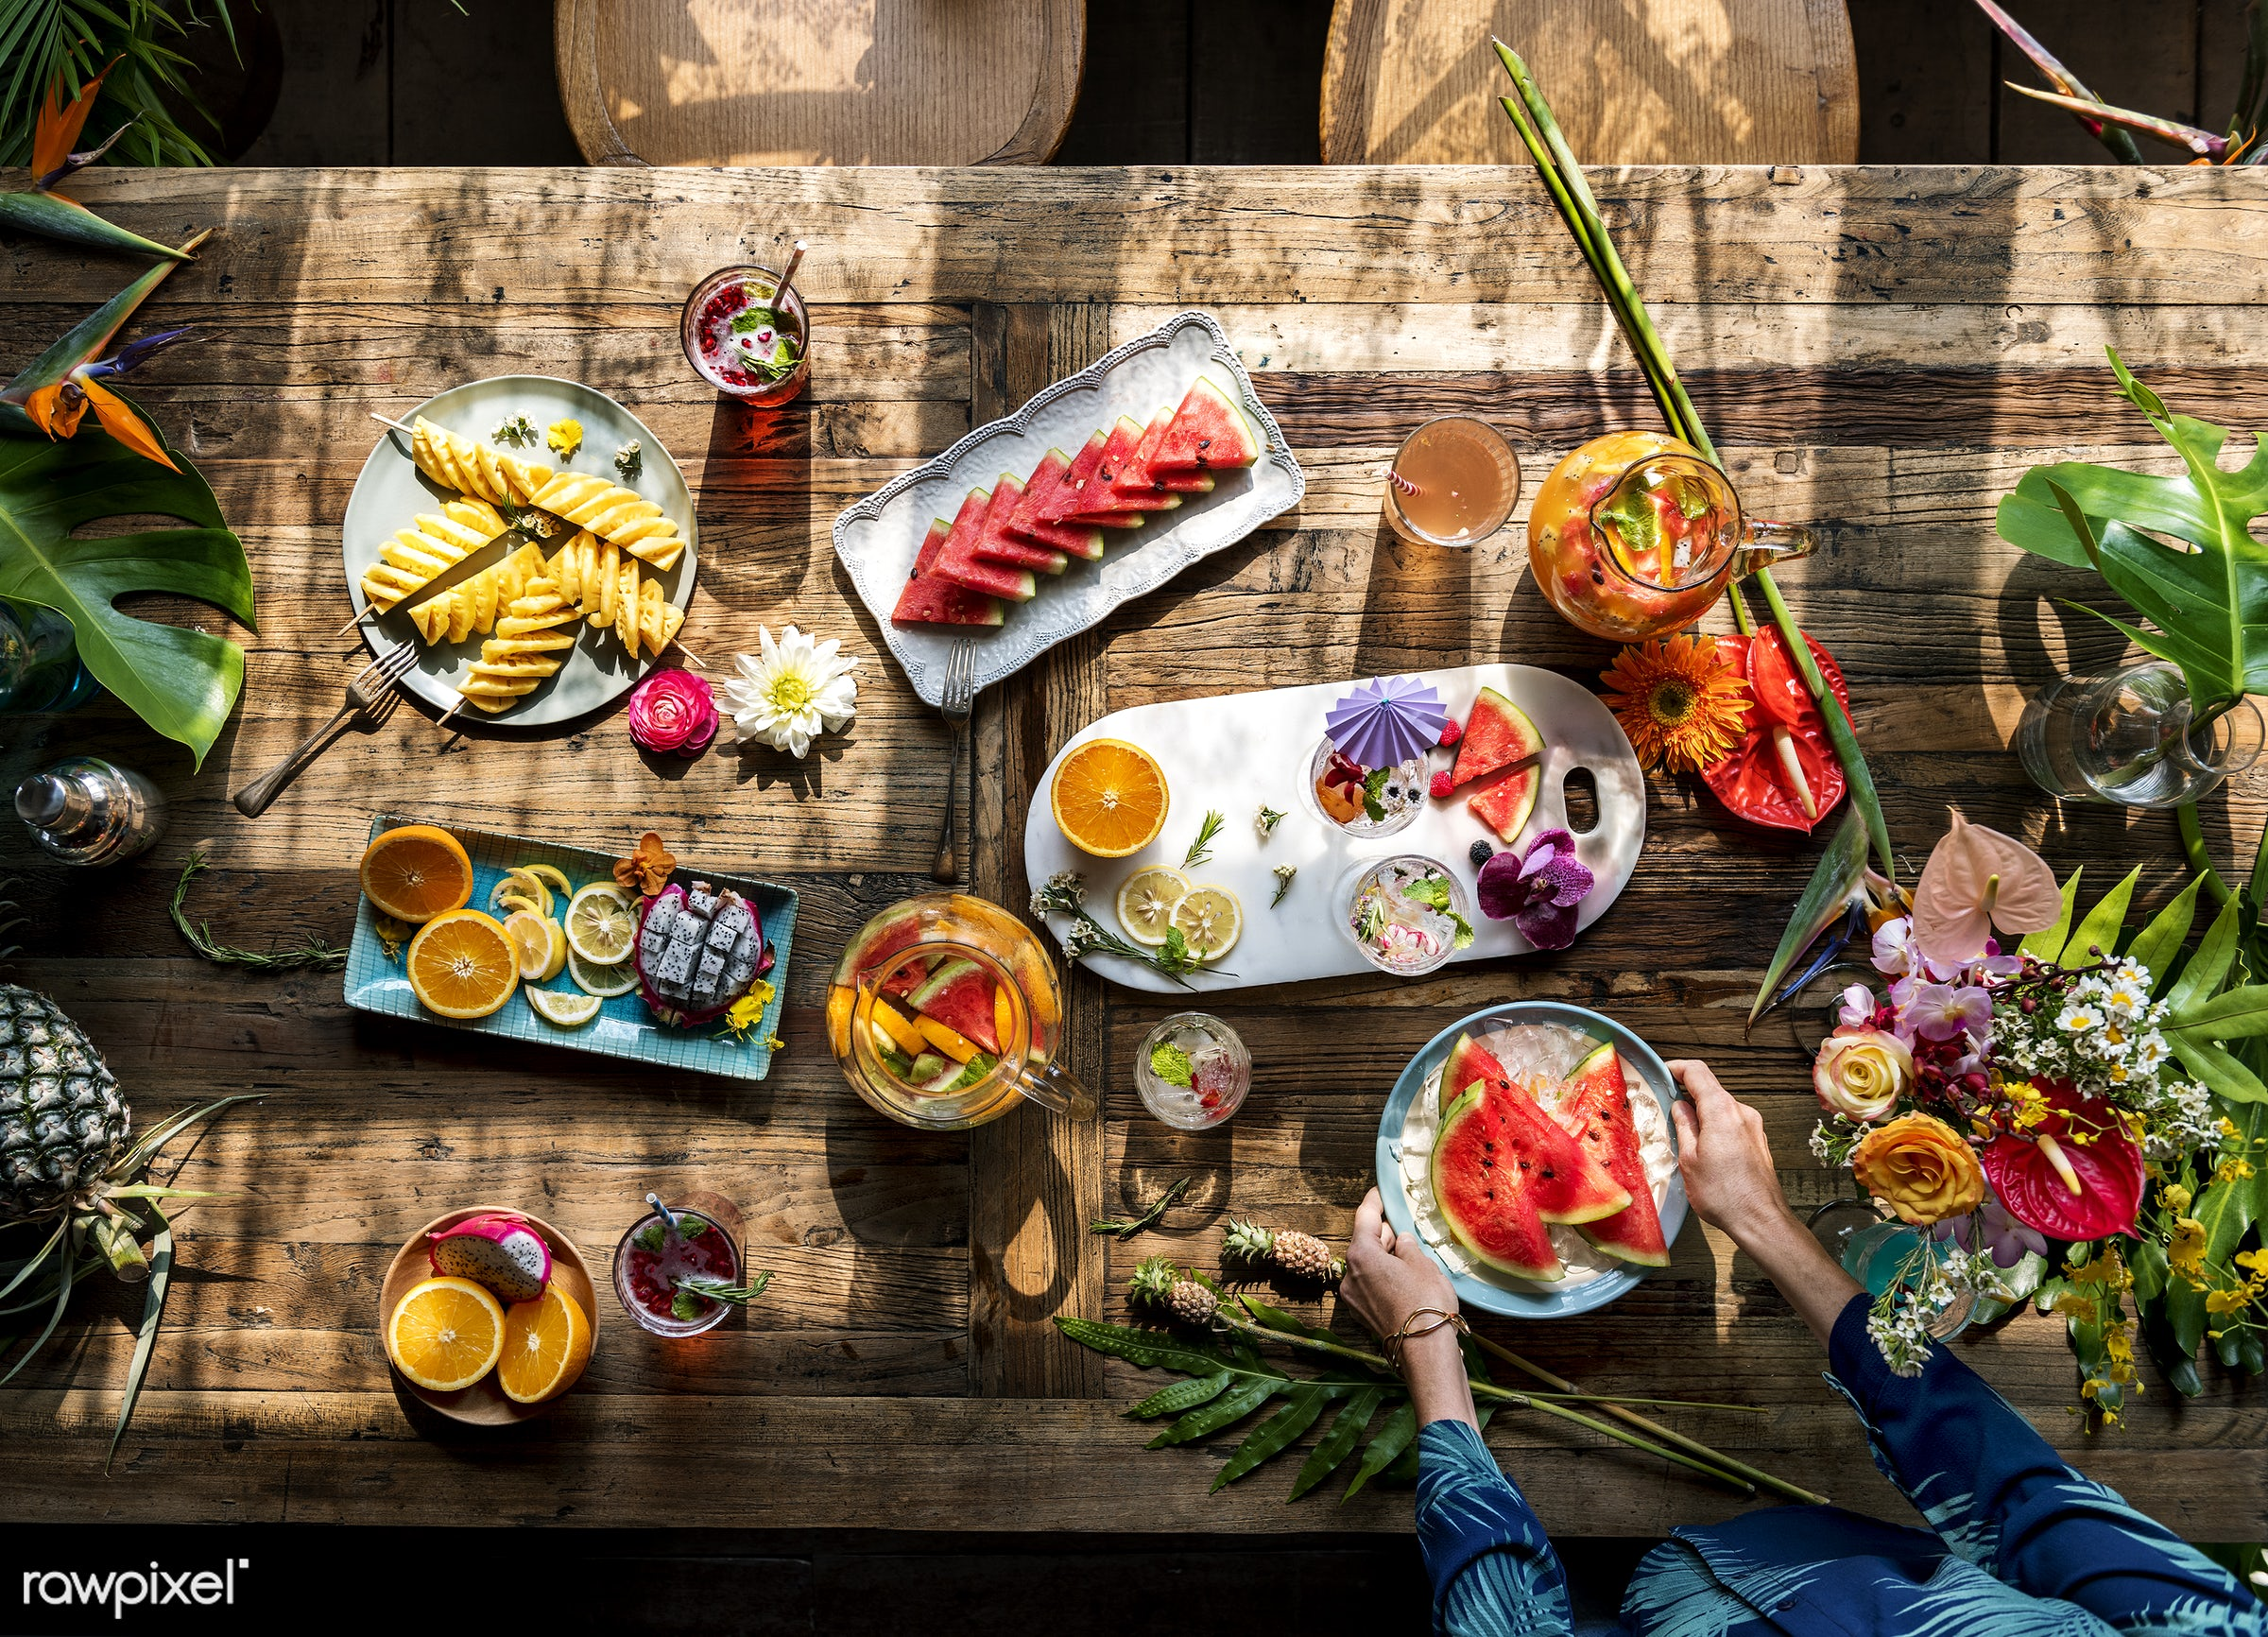 person, tropical, drinks, fresh, hands, juice, cocktail, flower, preparation, fruits, refreshment, table, wooden, food,...